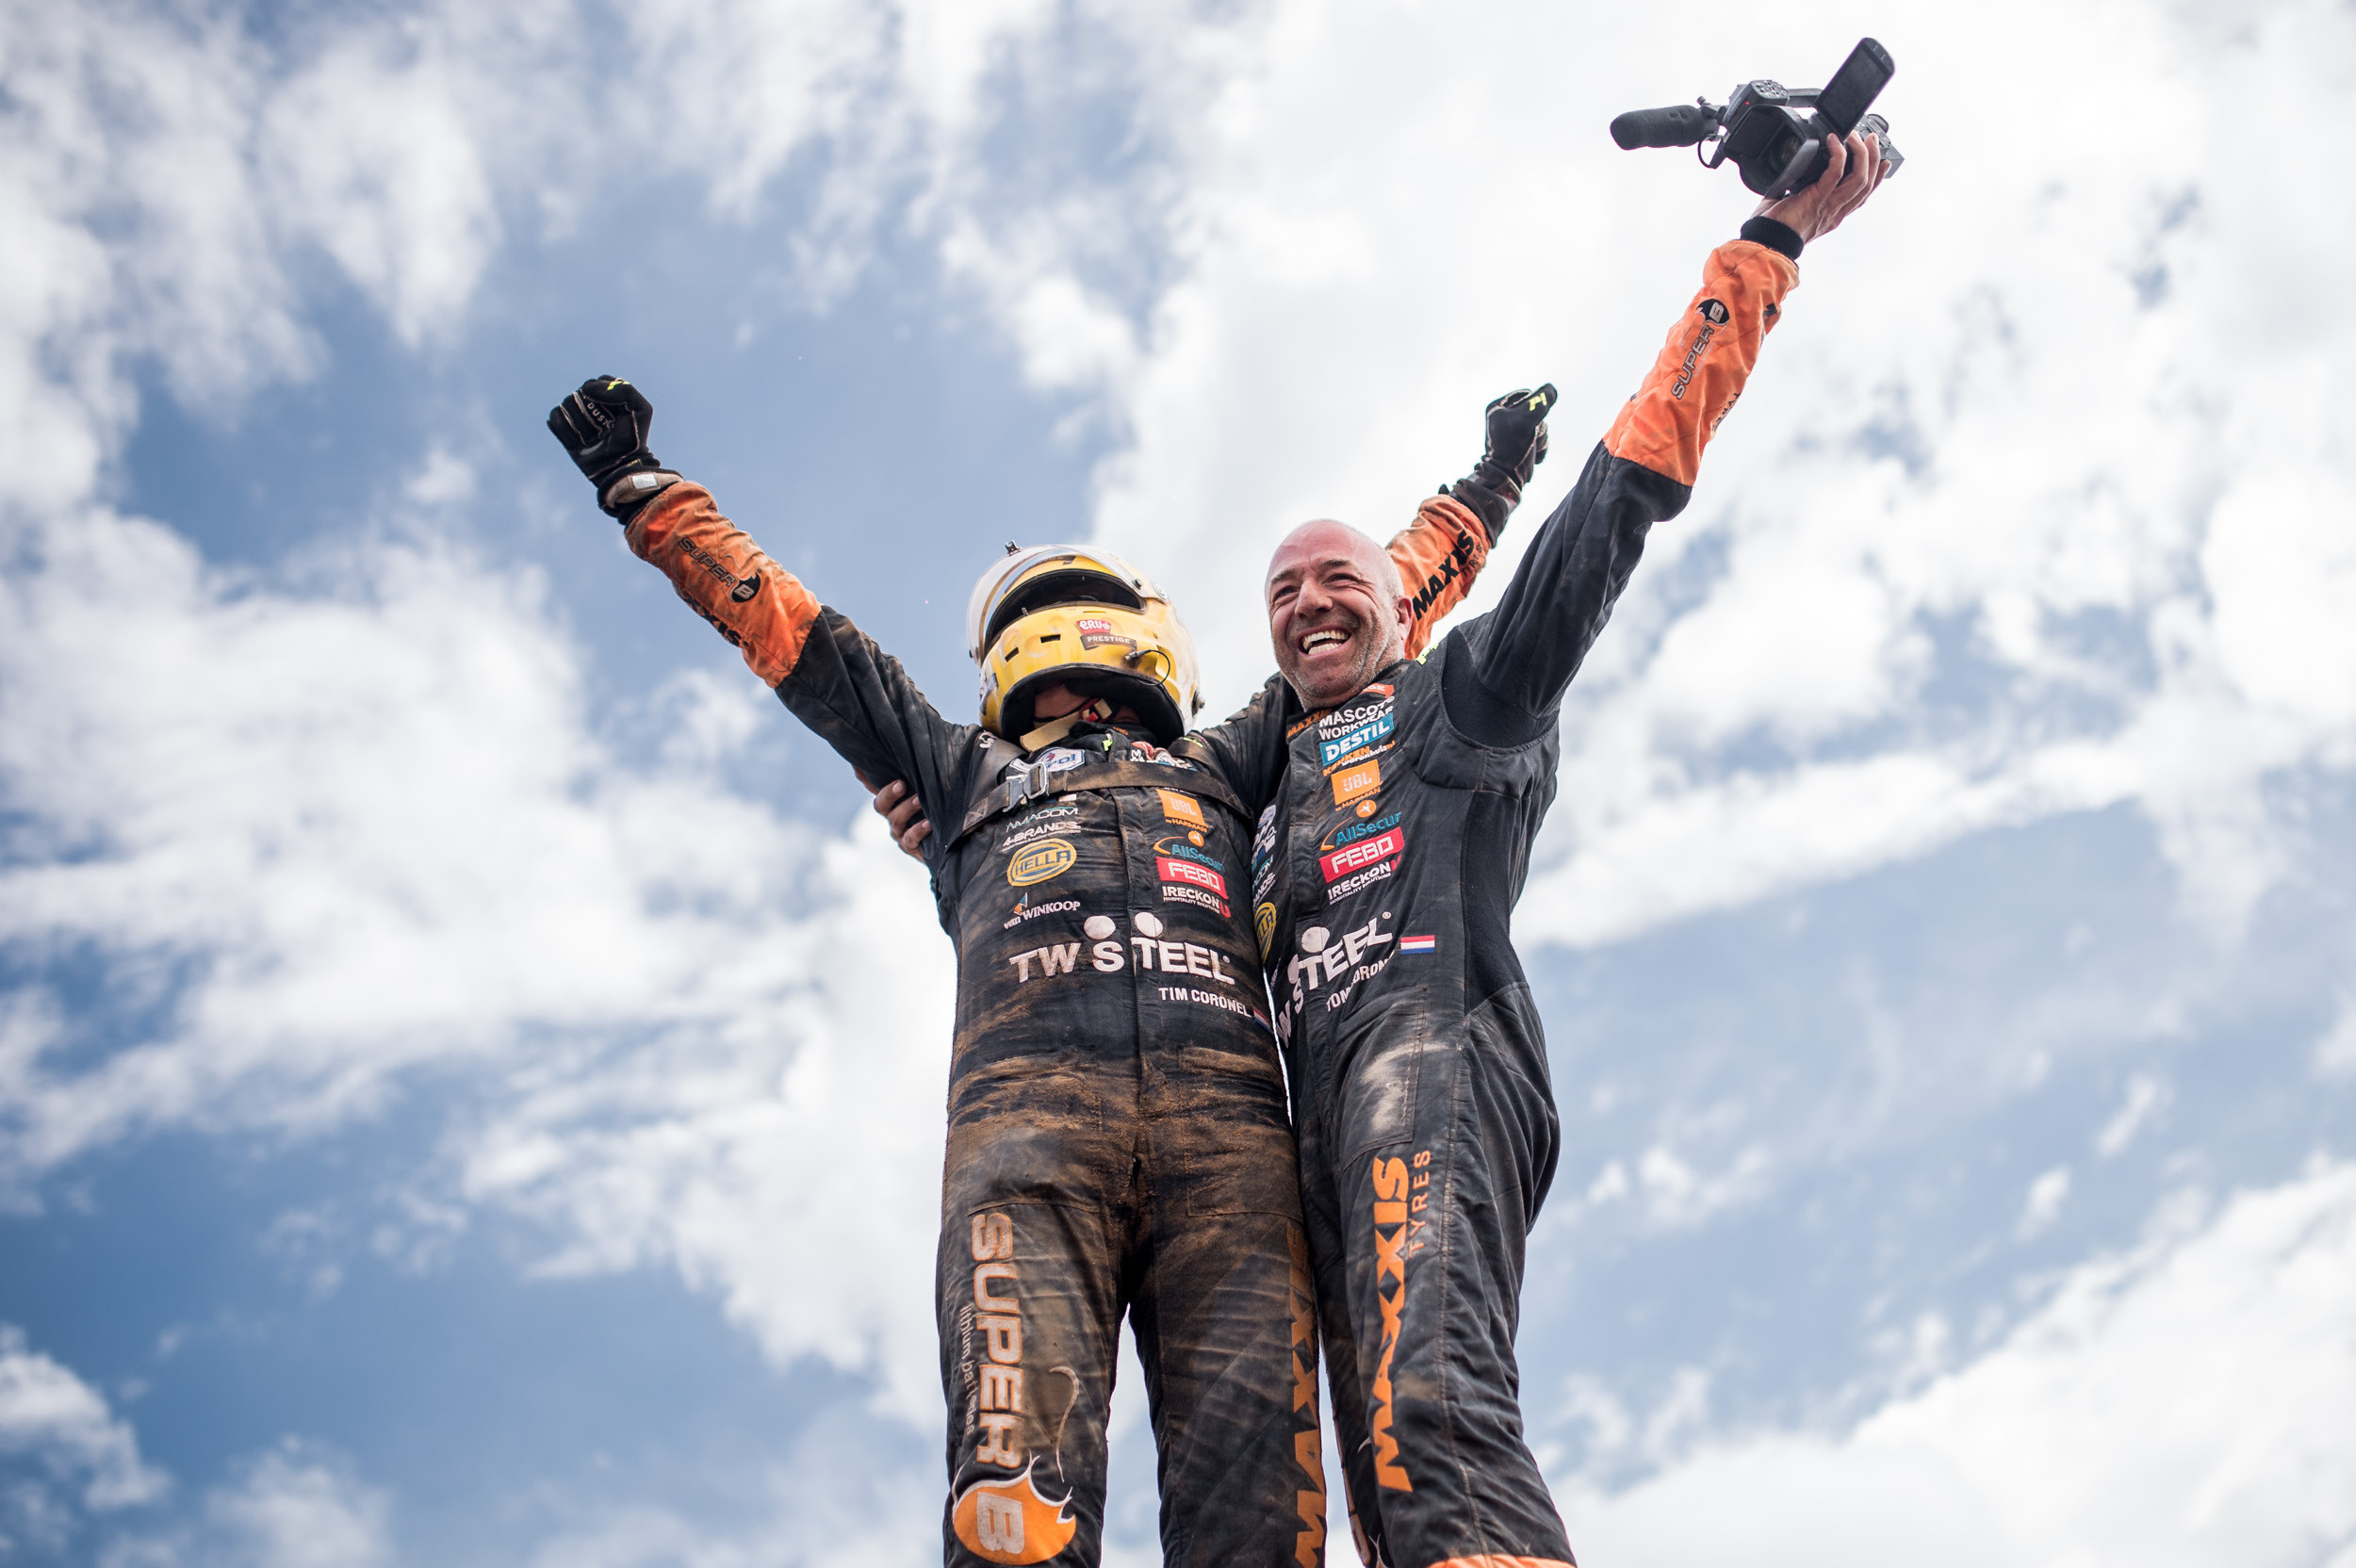 Interview with Tom Coronel about Dakar 2021